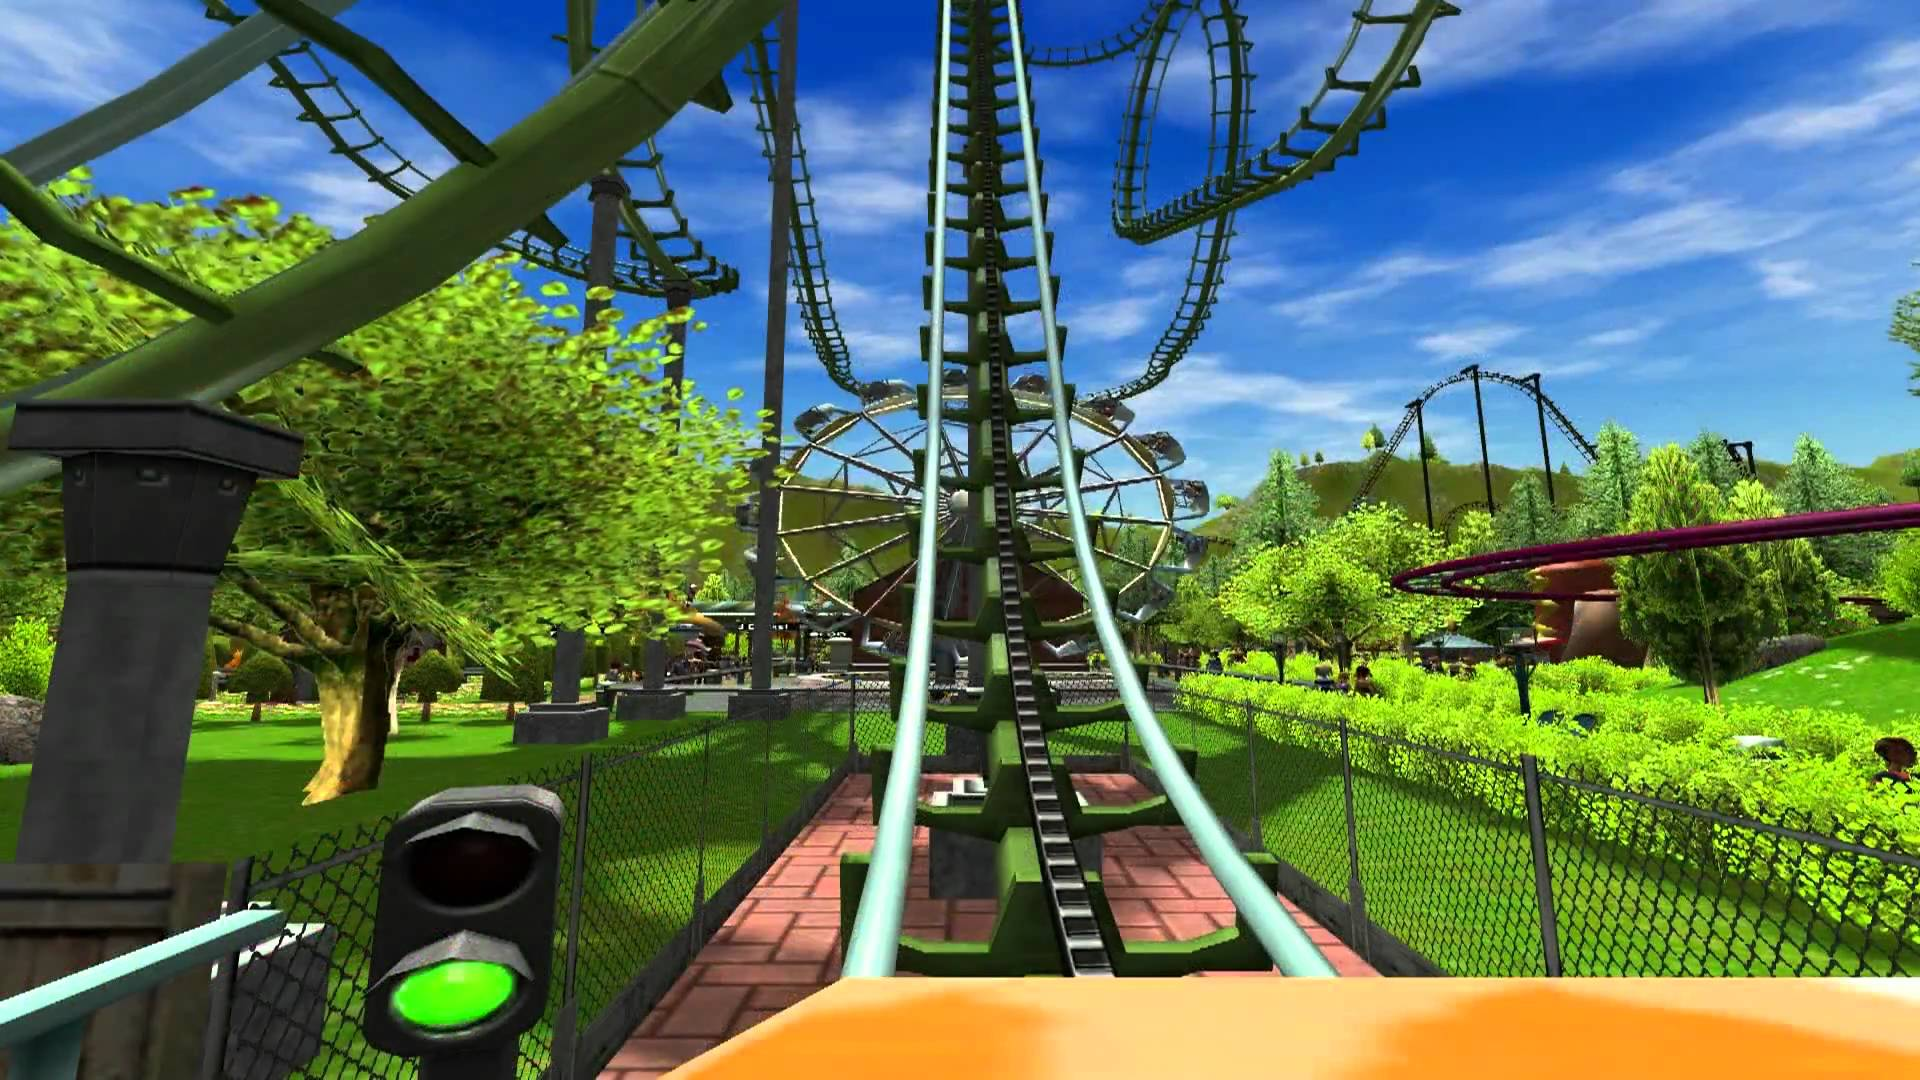 RollerCoaster Tycoon 3 Gaming Cypher